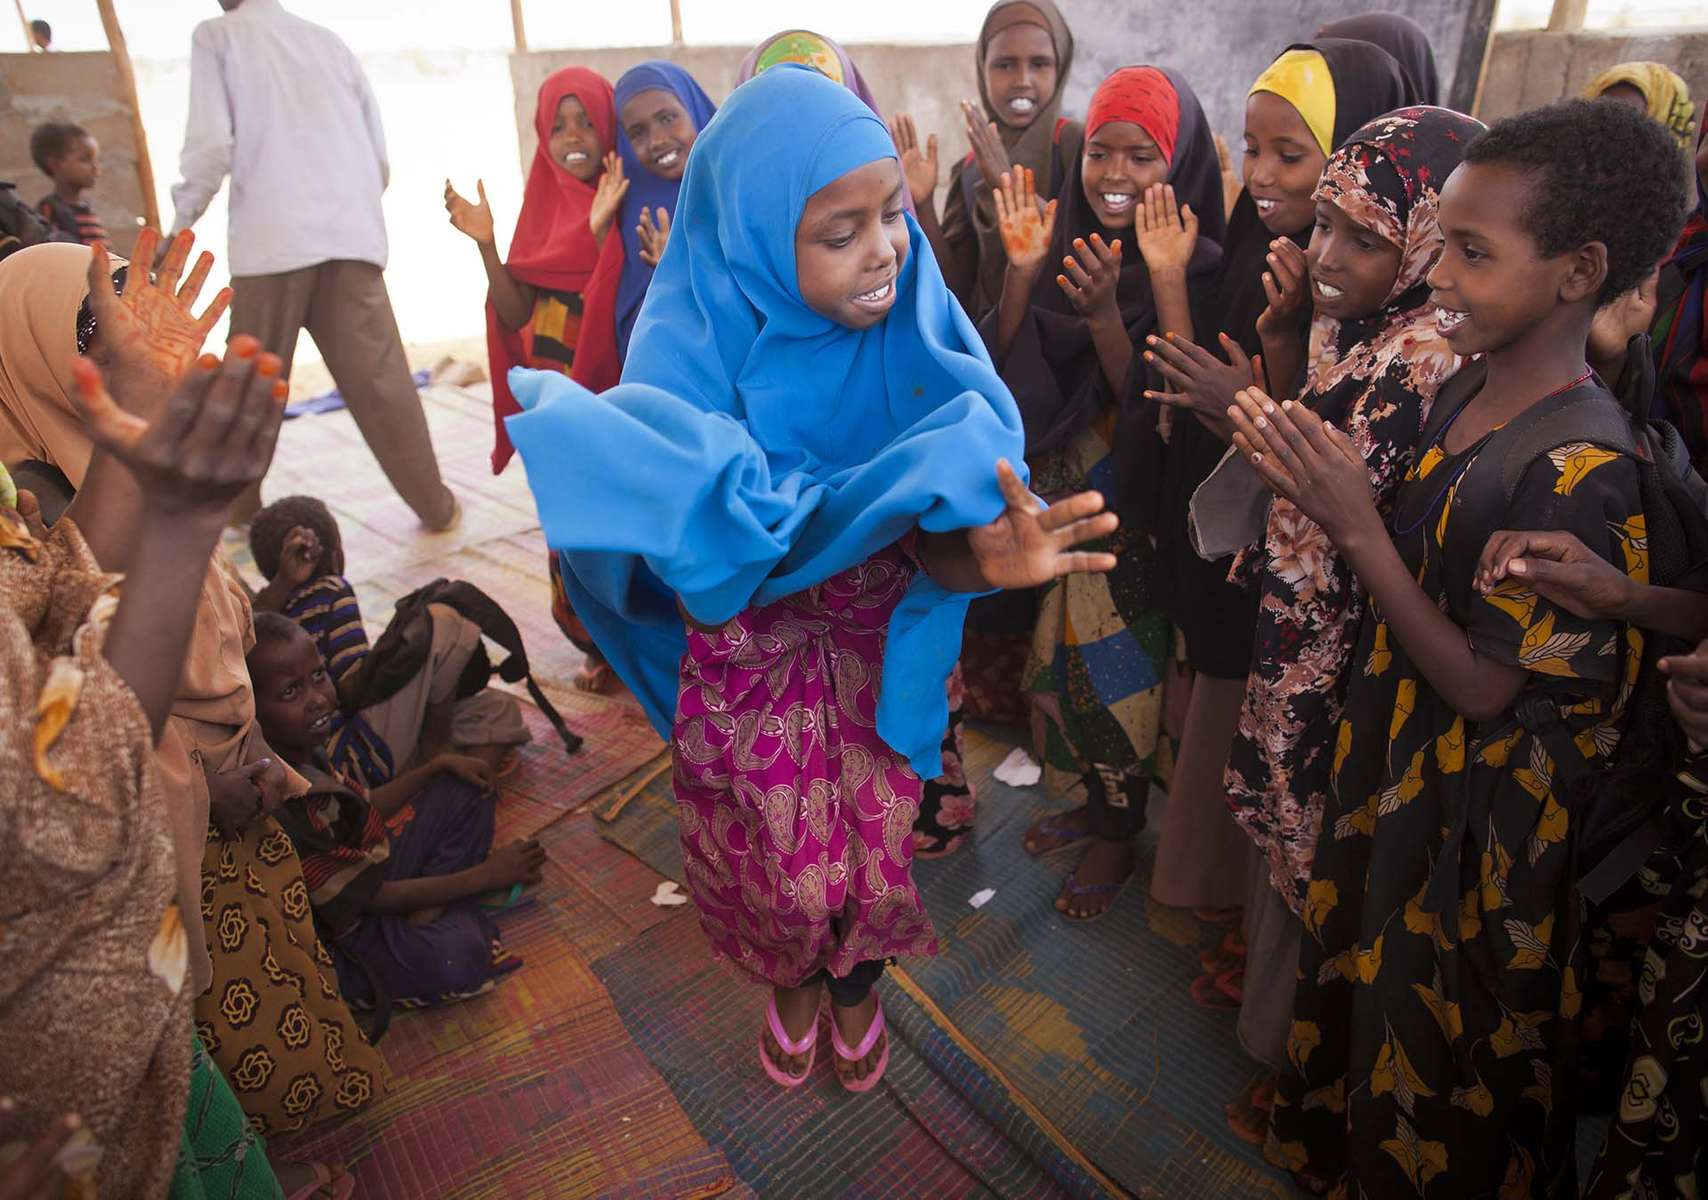 Refugee children engage in a tradtional song and dance at Buramino Refugee Camp in Dolo Ado in Ethiopia Thursday, March 8, 2012.